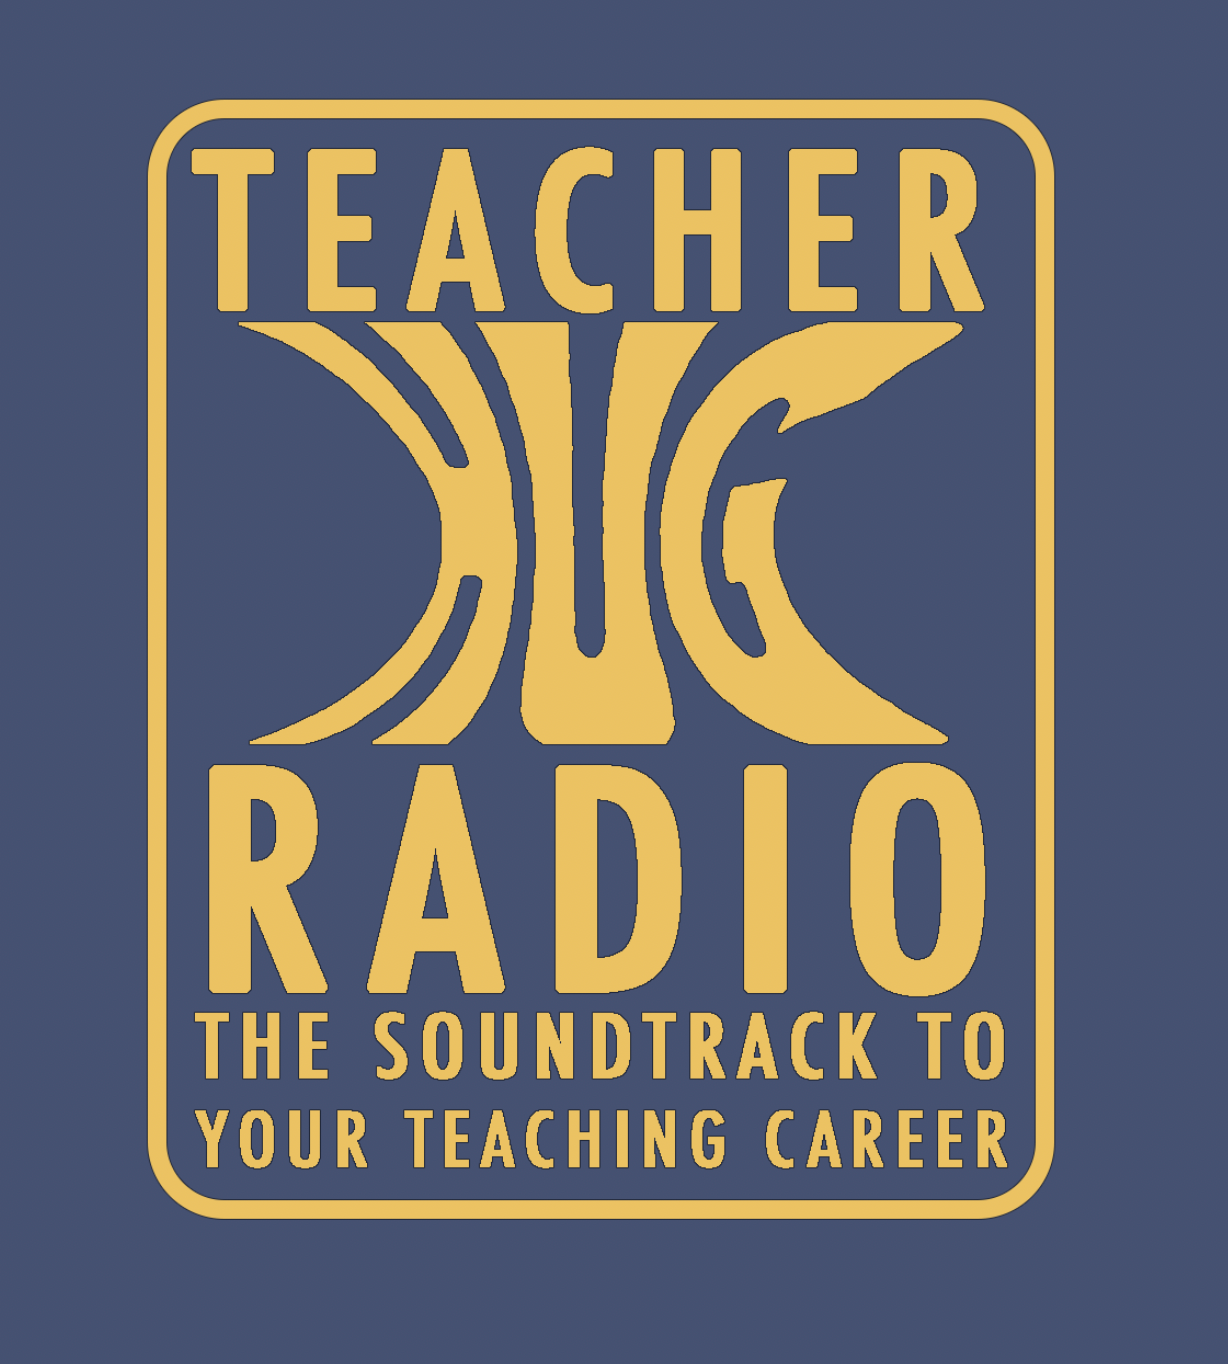 Teacher Hug Radio